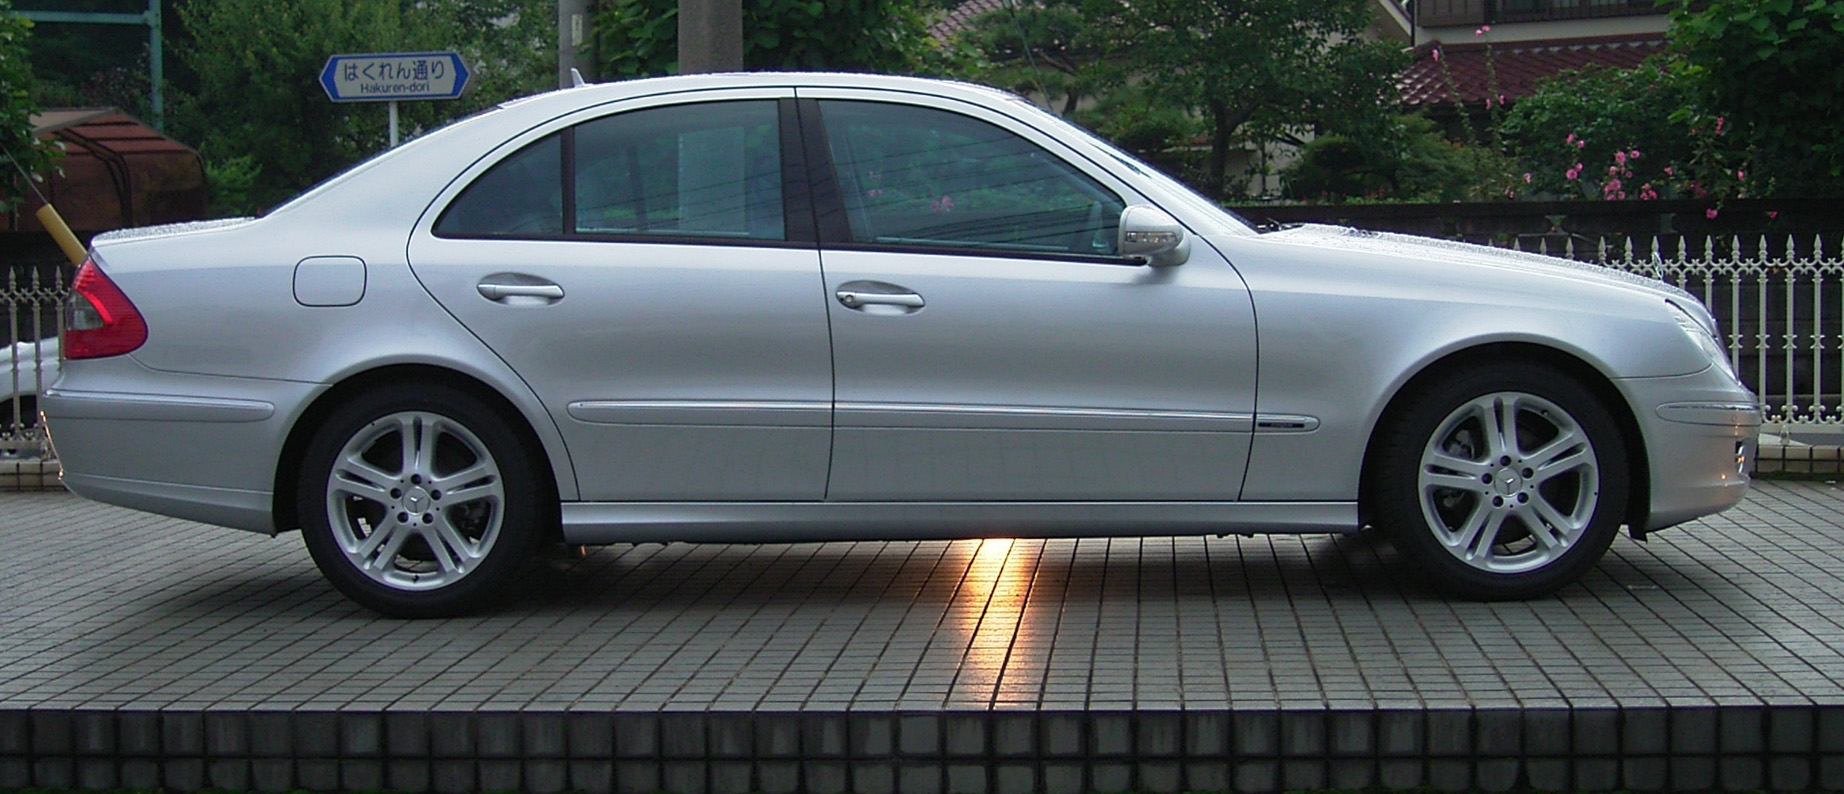 Mercedes benz e320 2004 review amazing pictures and for 2004 mercedes benz e320 review